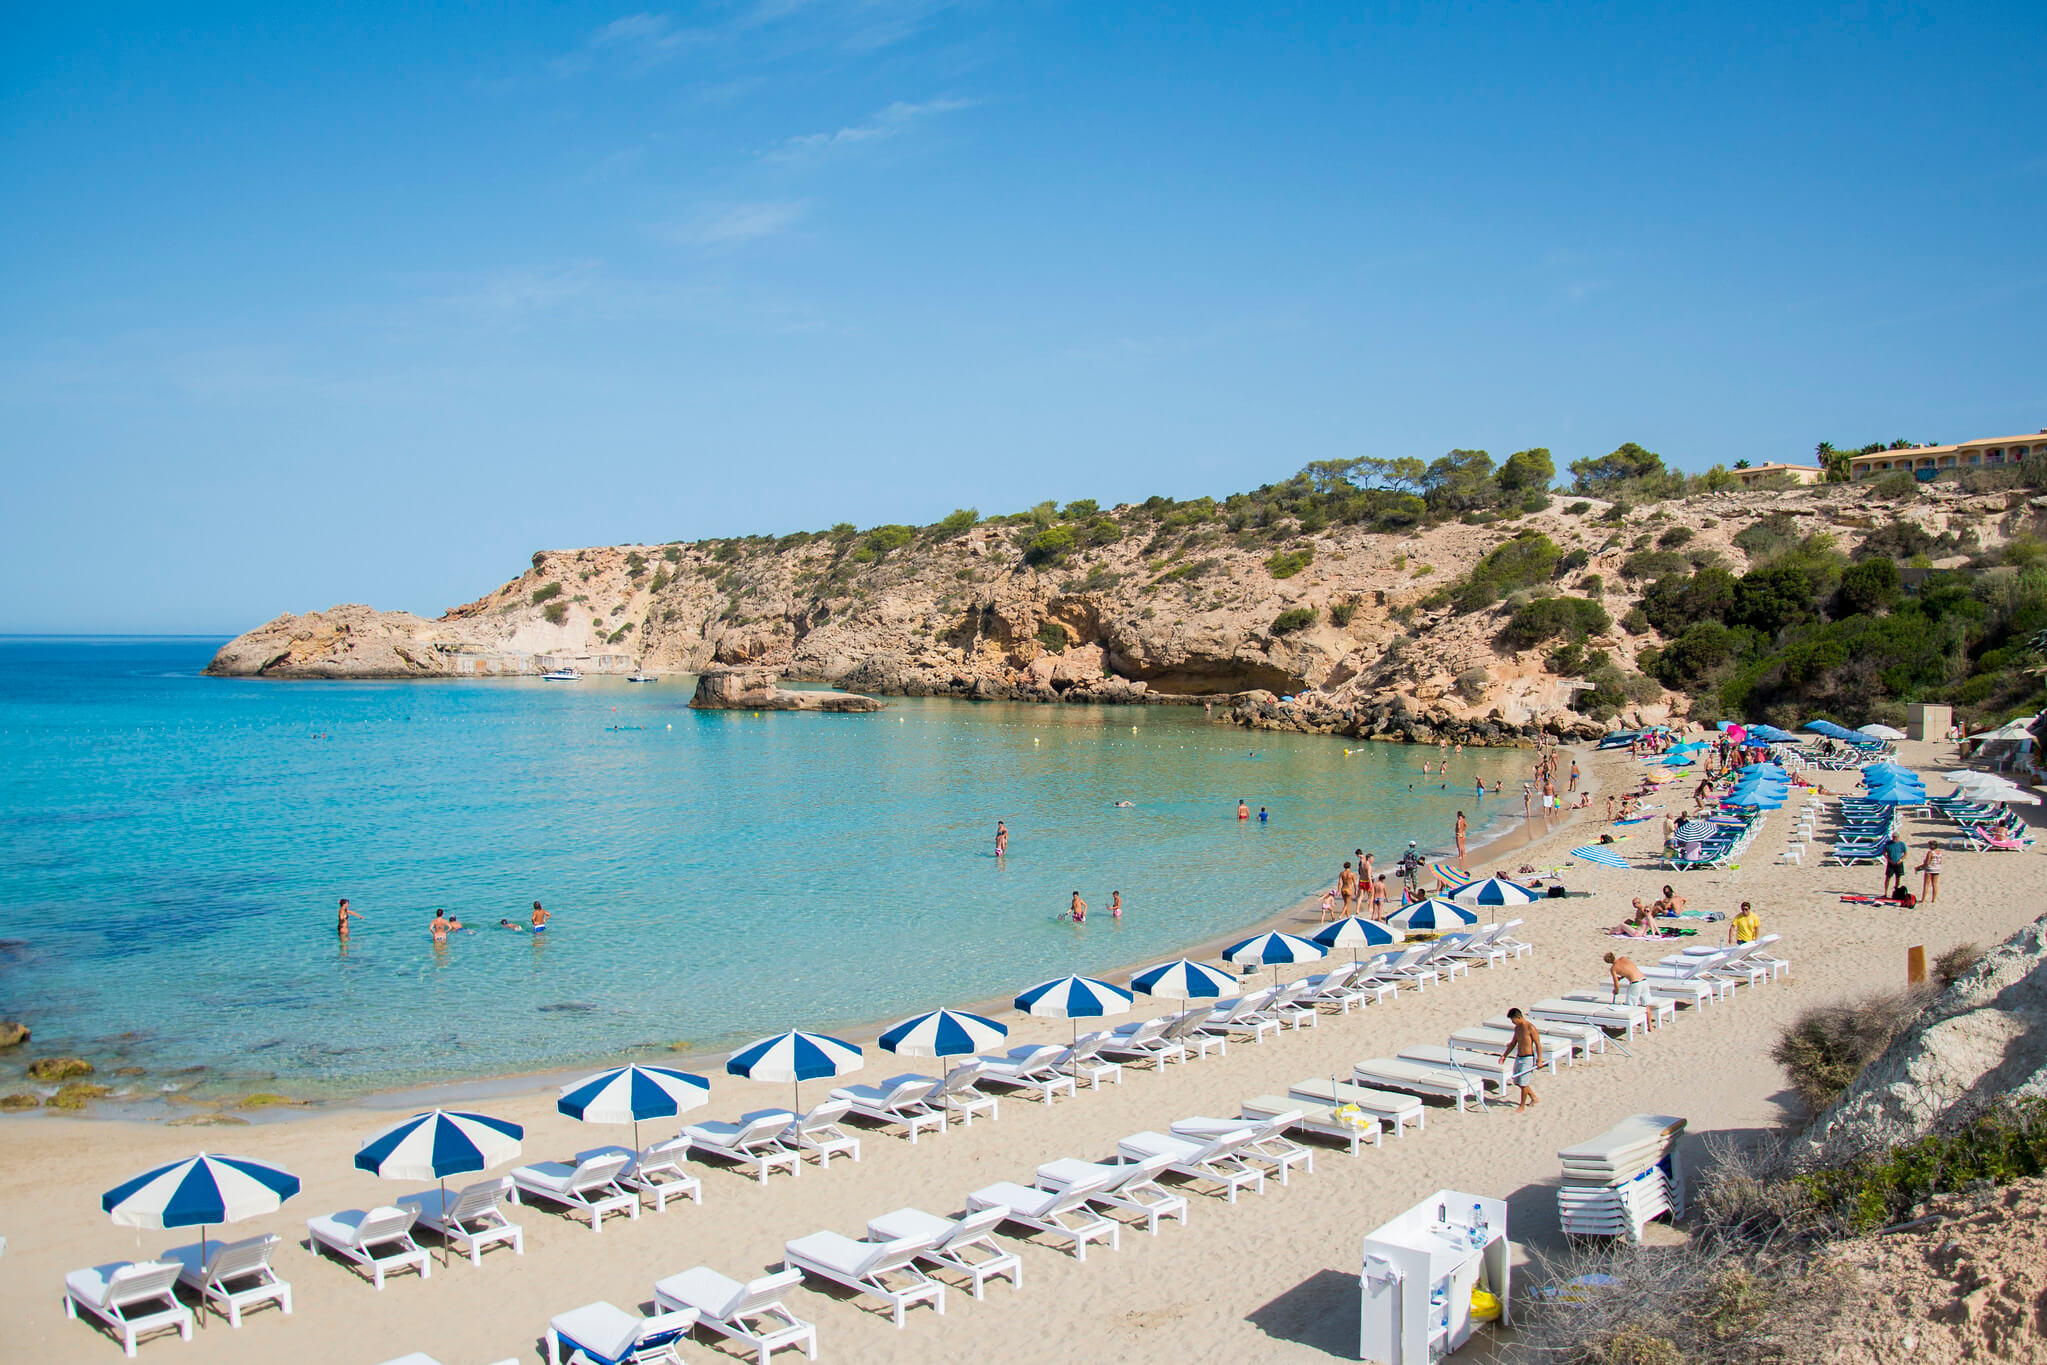 https://www.white-ibiza.com/wp-content/uploads/2020/03/ibiza-beaches-cala-tarida-02.jpg